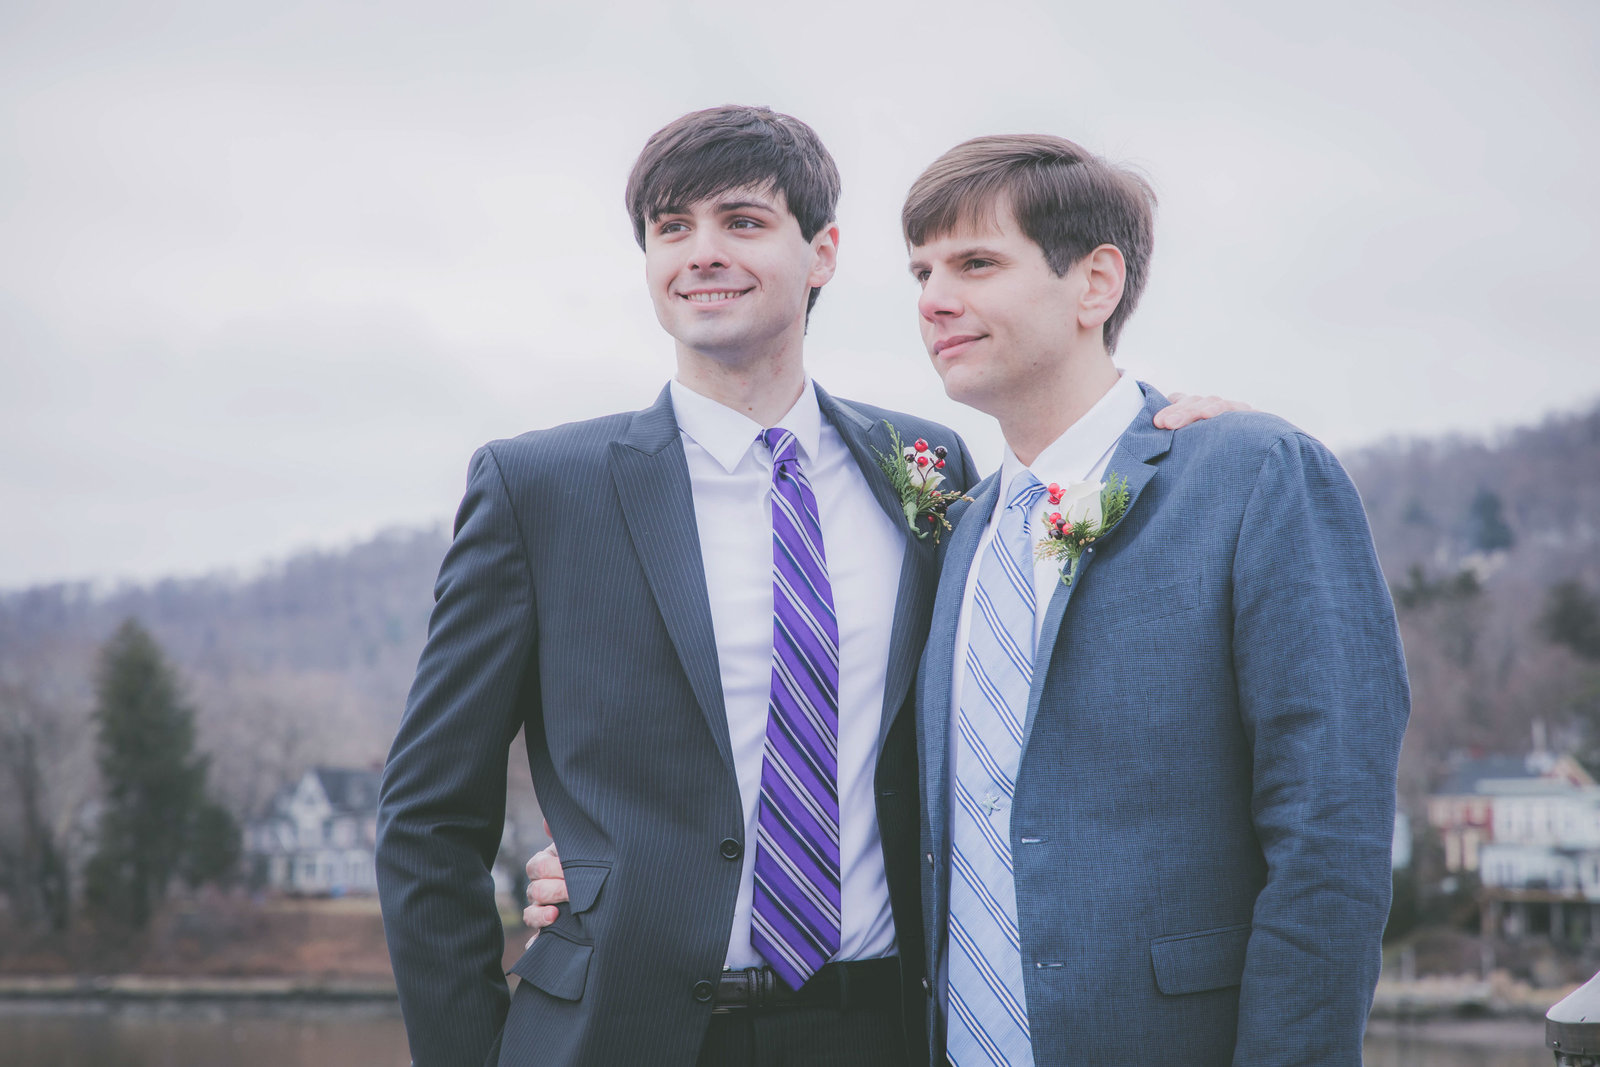 Two grooms gaze off into the distance during their winter elopement.